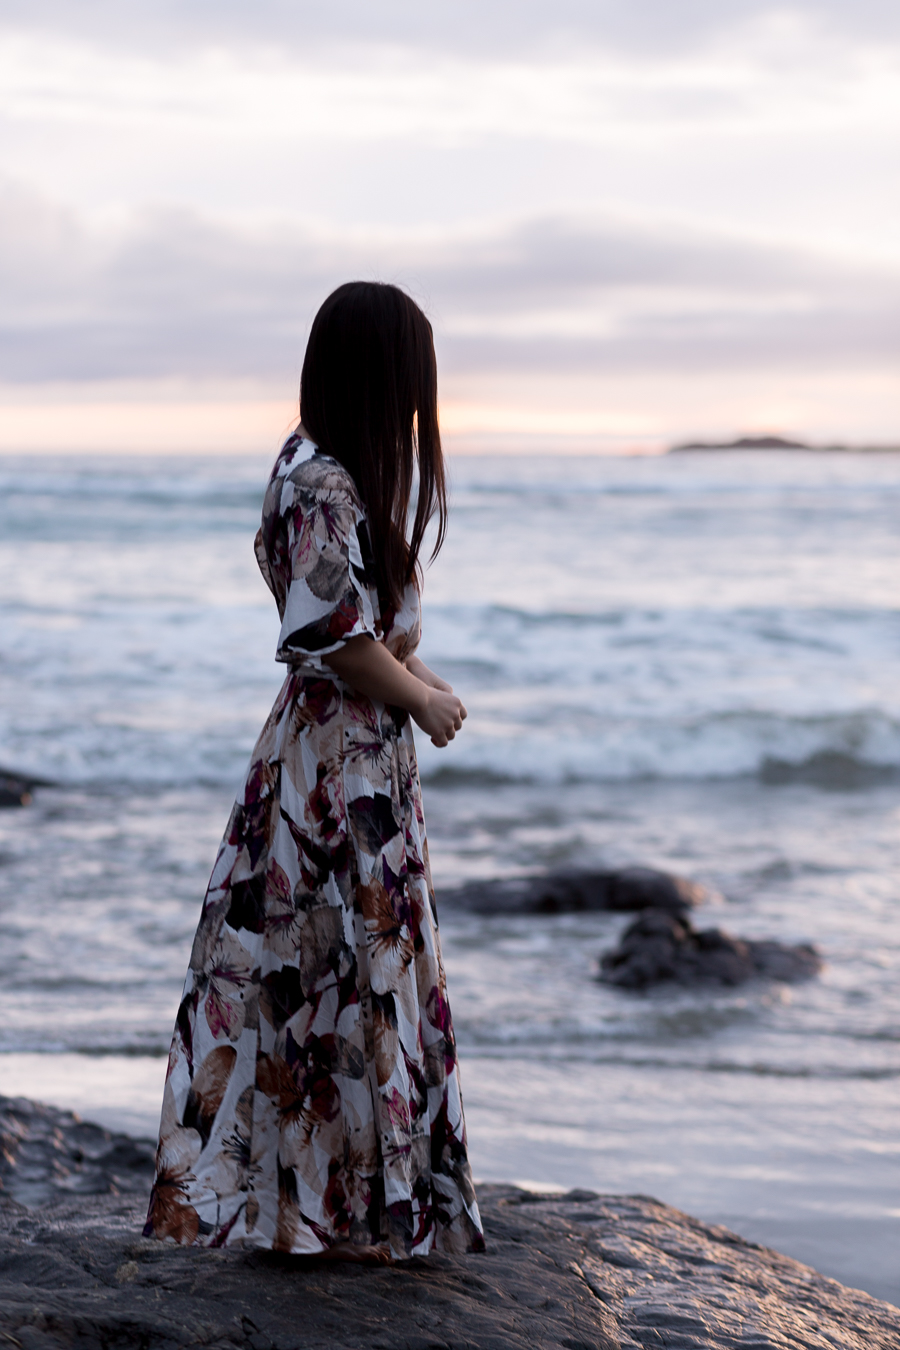 floral jessa kae dress Tofino beach